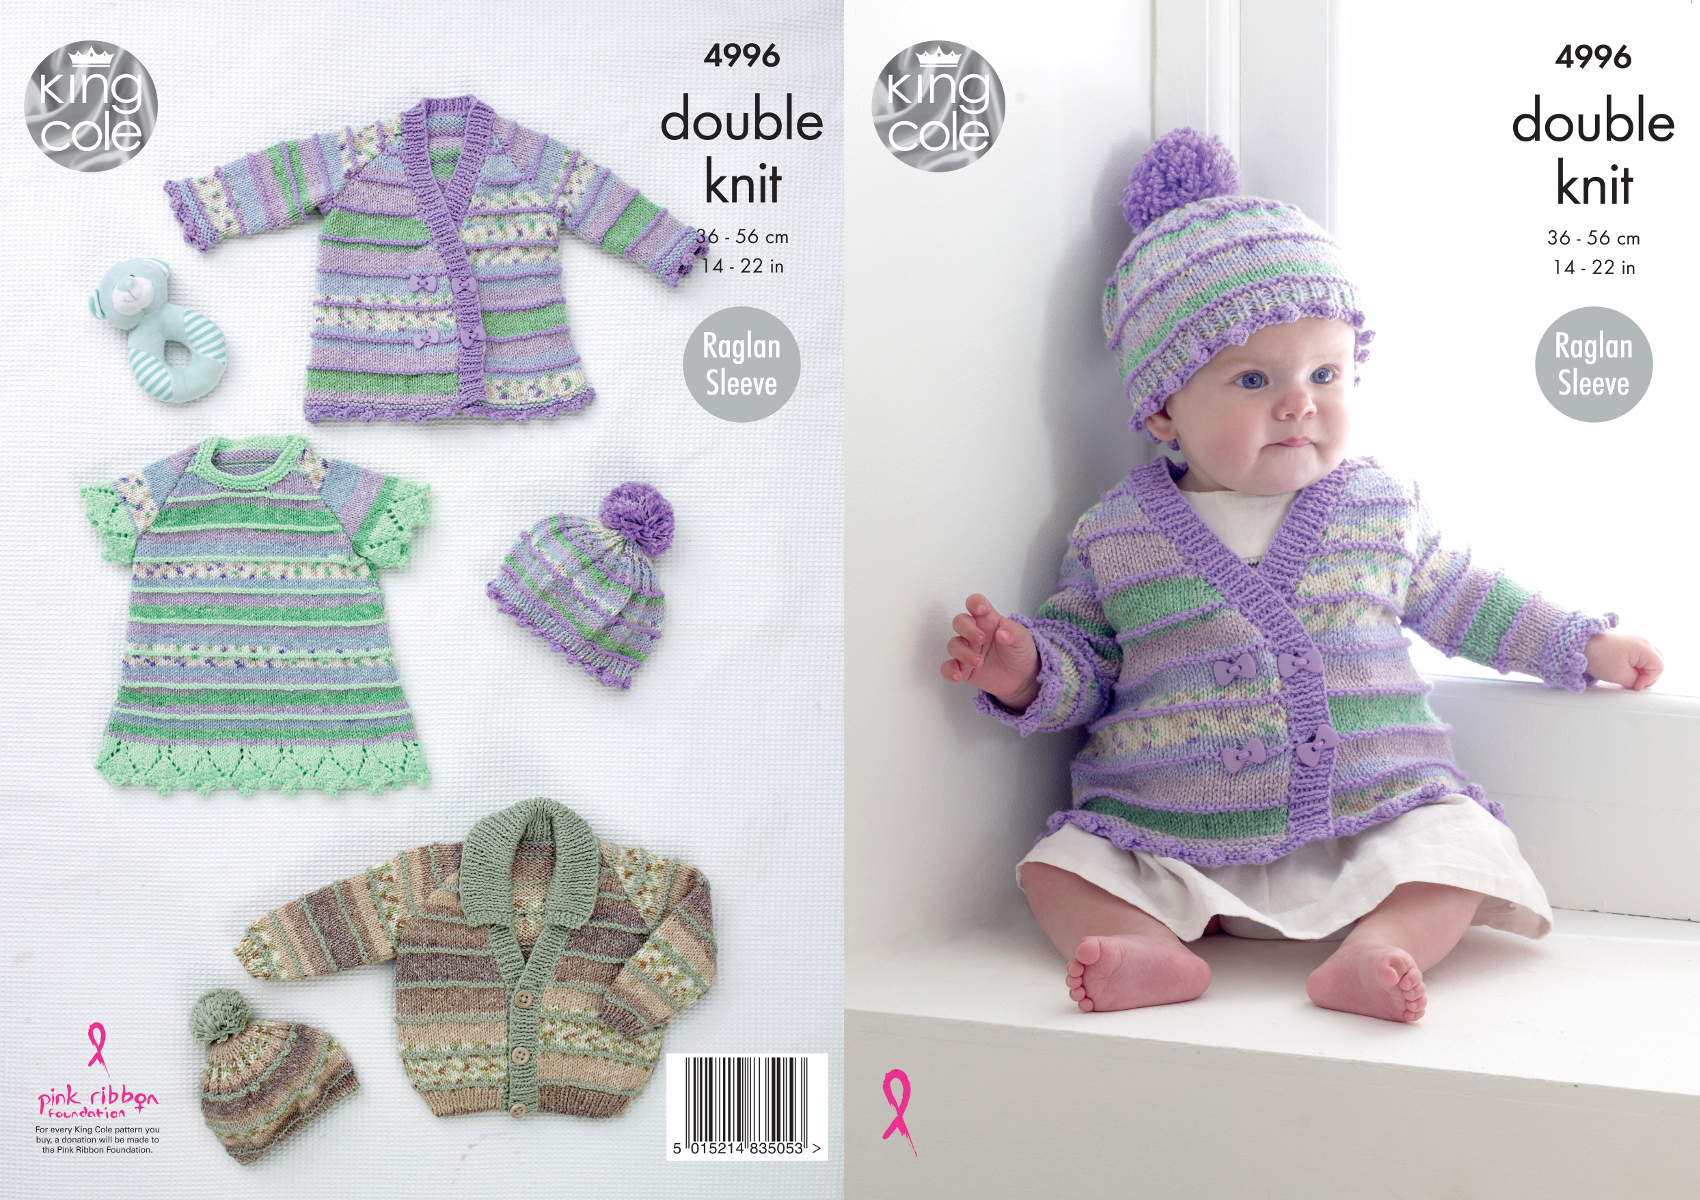 BHKC 21 Baby Girl Double Knitting Pattern Dress with Optional Embroidery Flowers